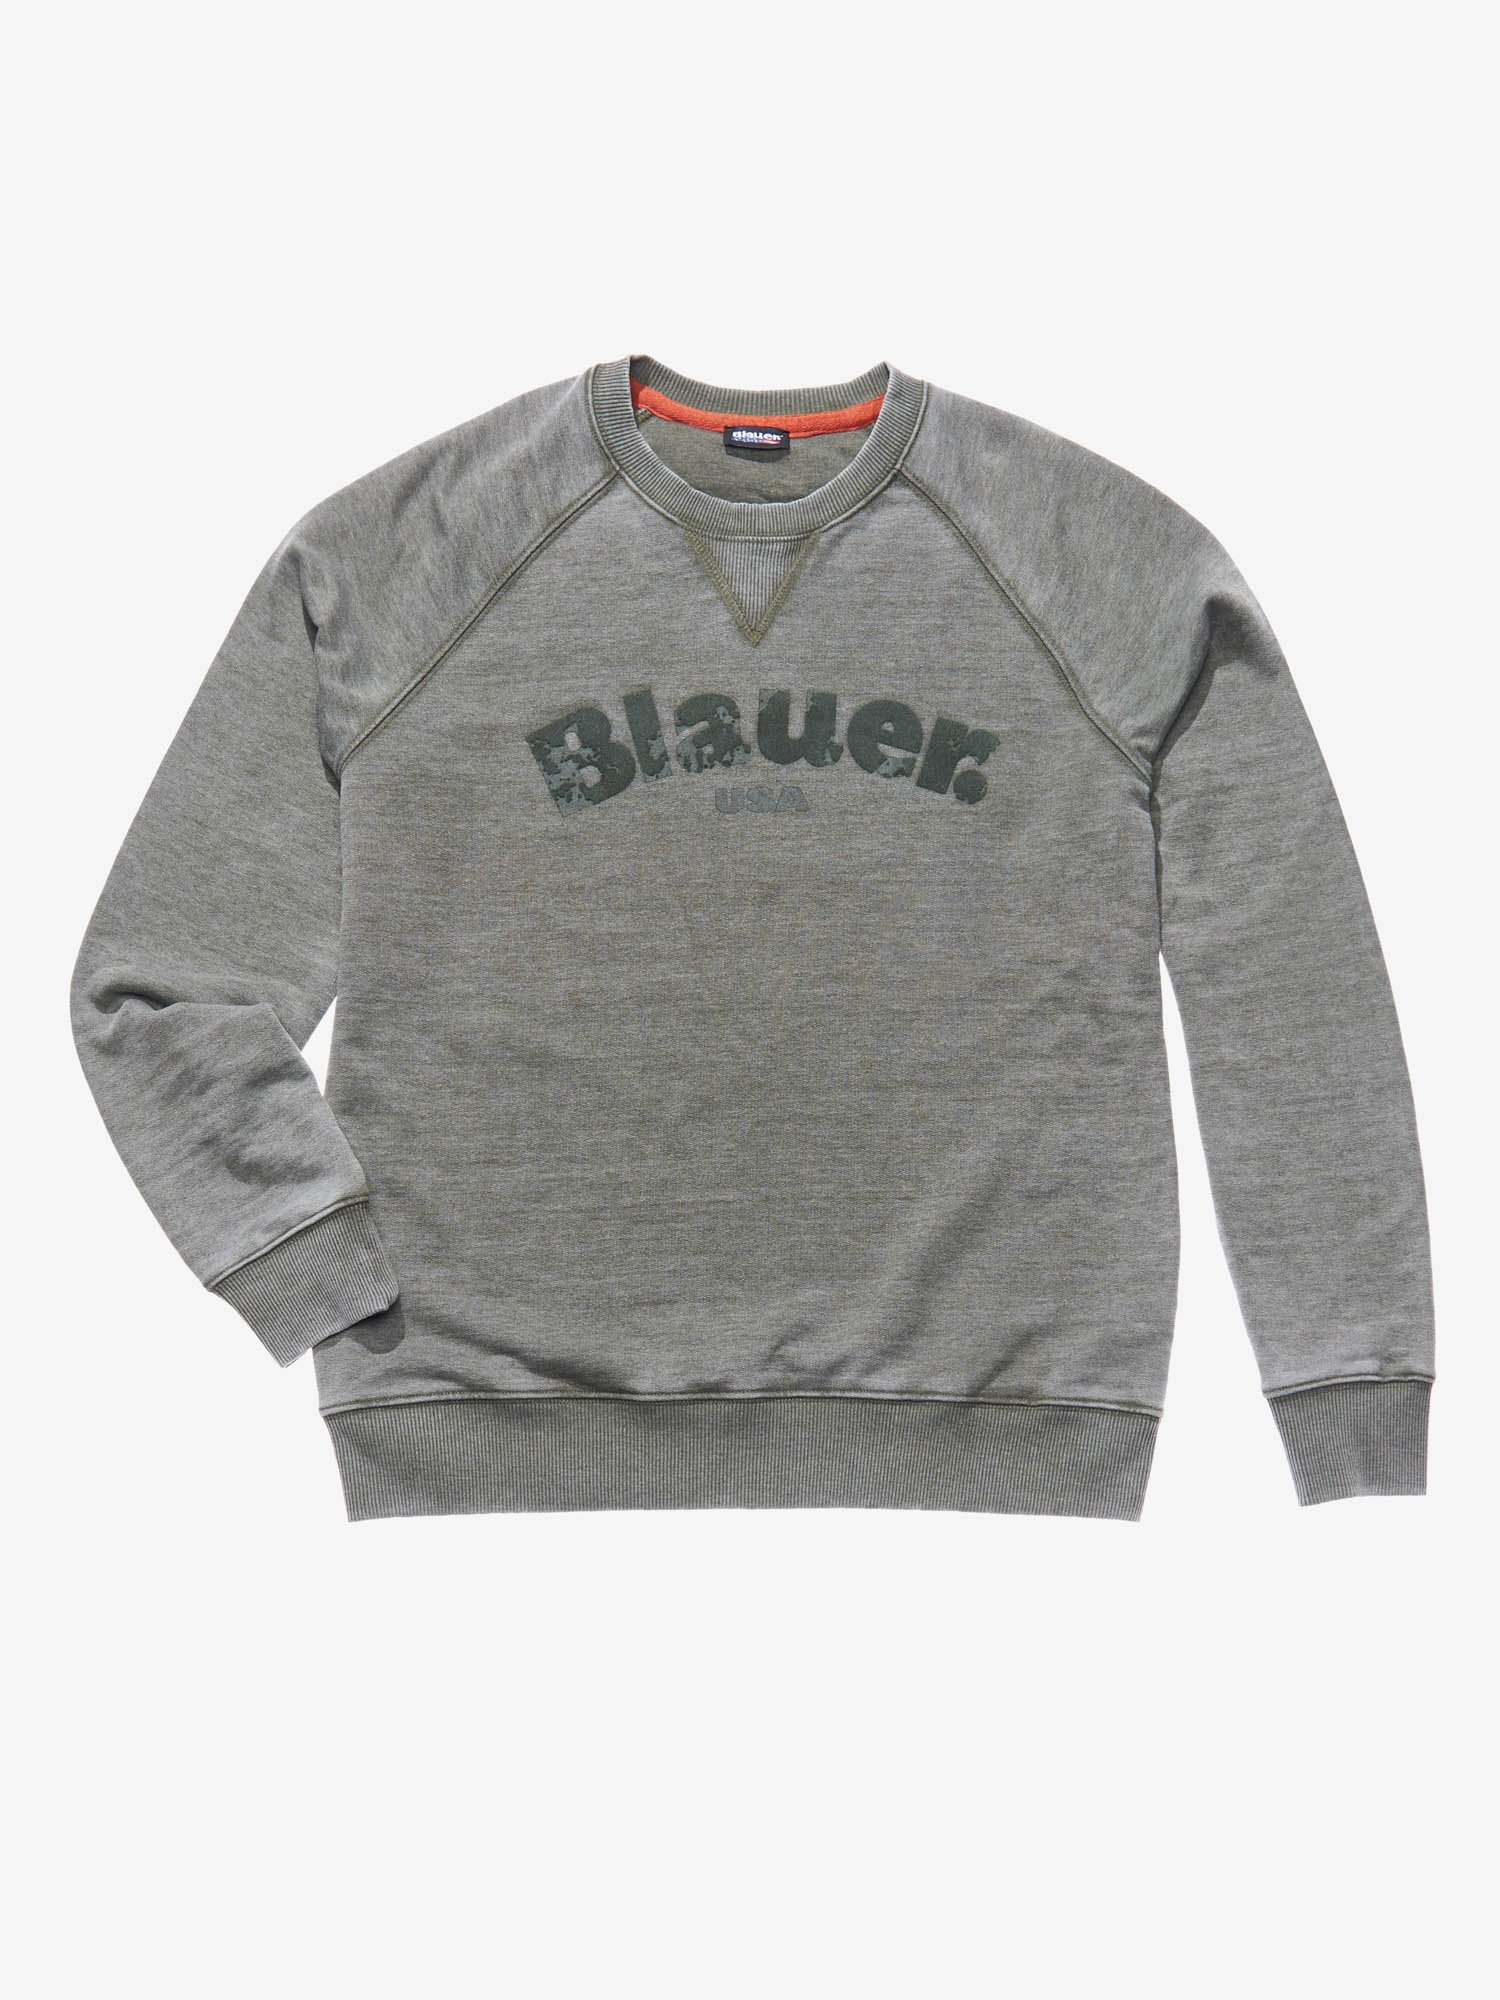 BURNOUT CREW NECK SWEATSHIRT - Blauer